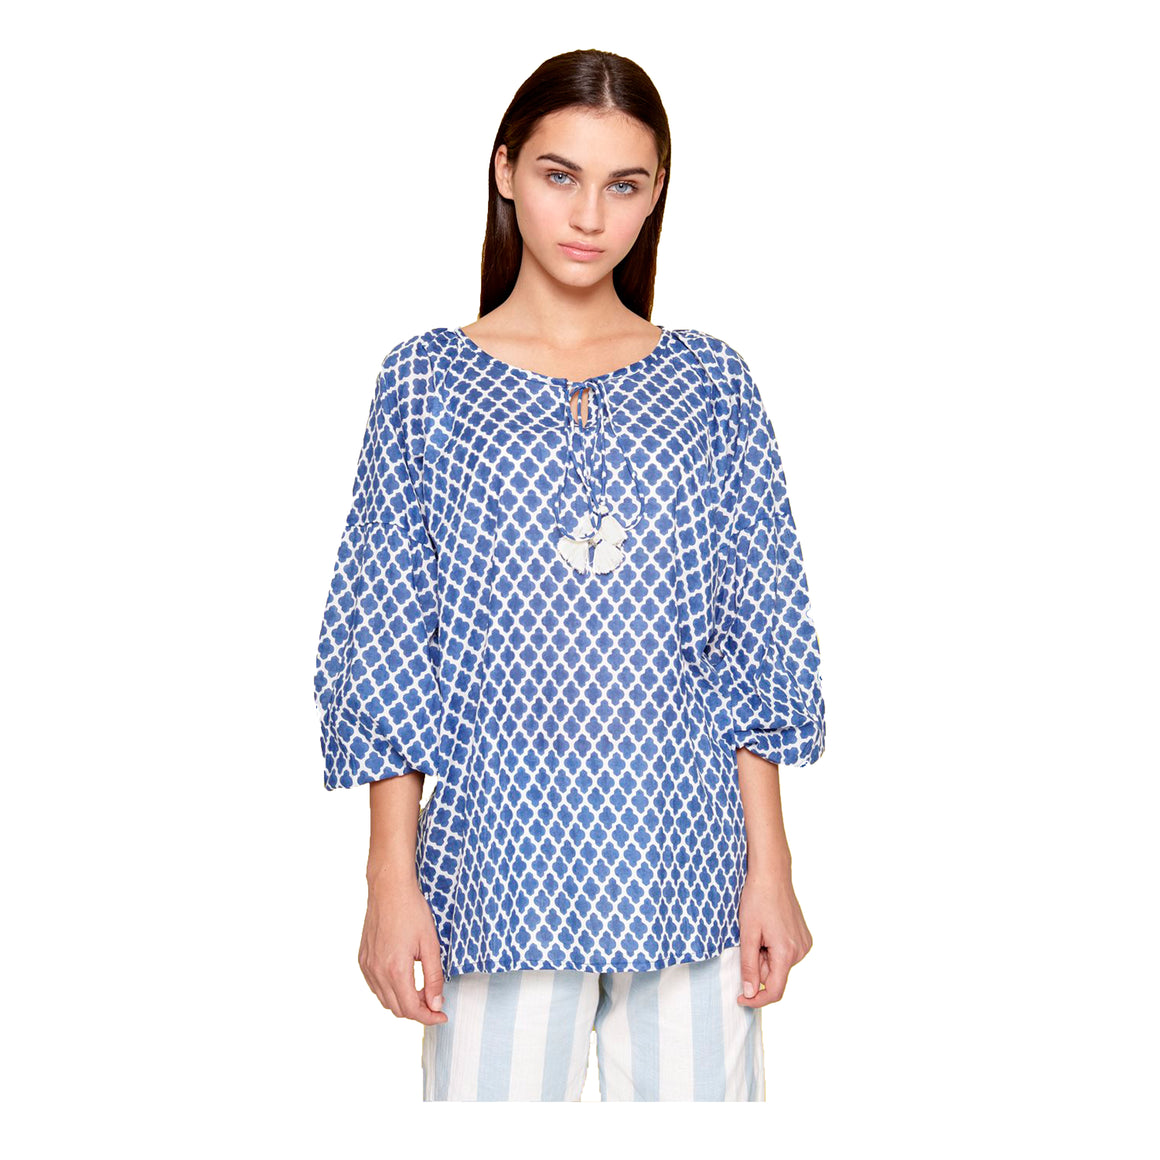 Kaftan Shirt for Women in Navy